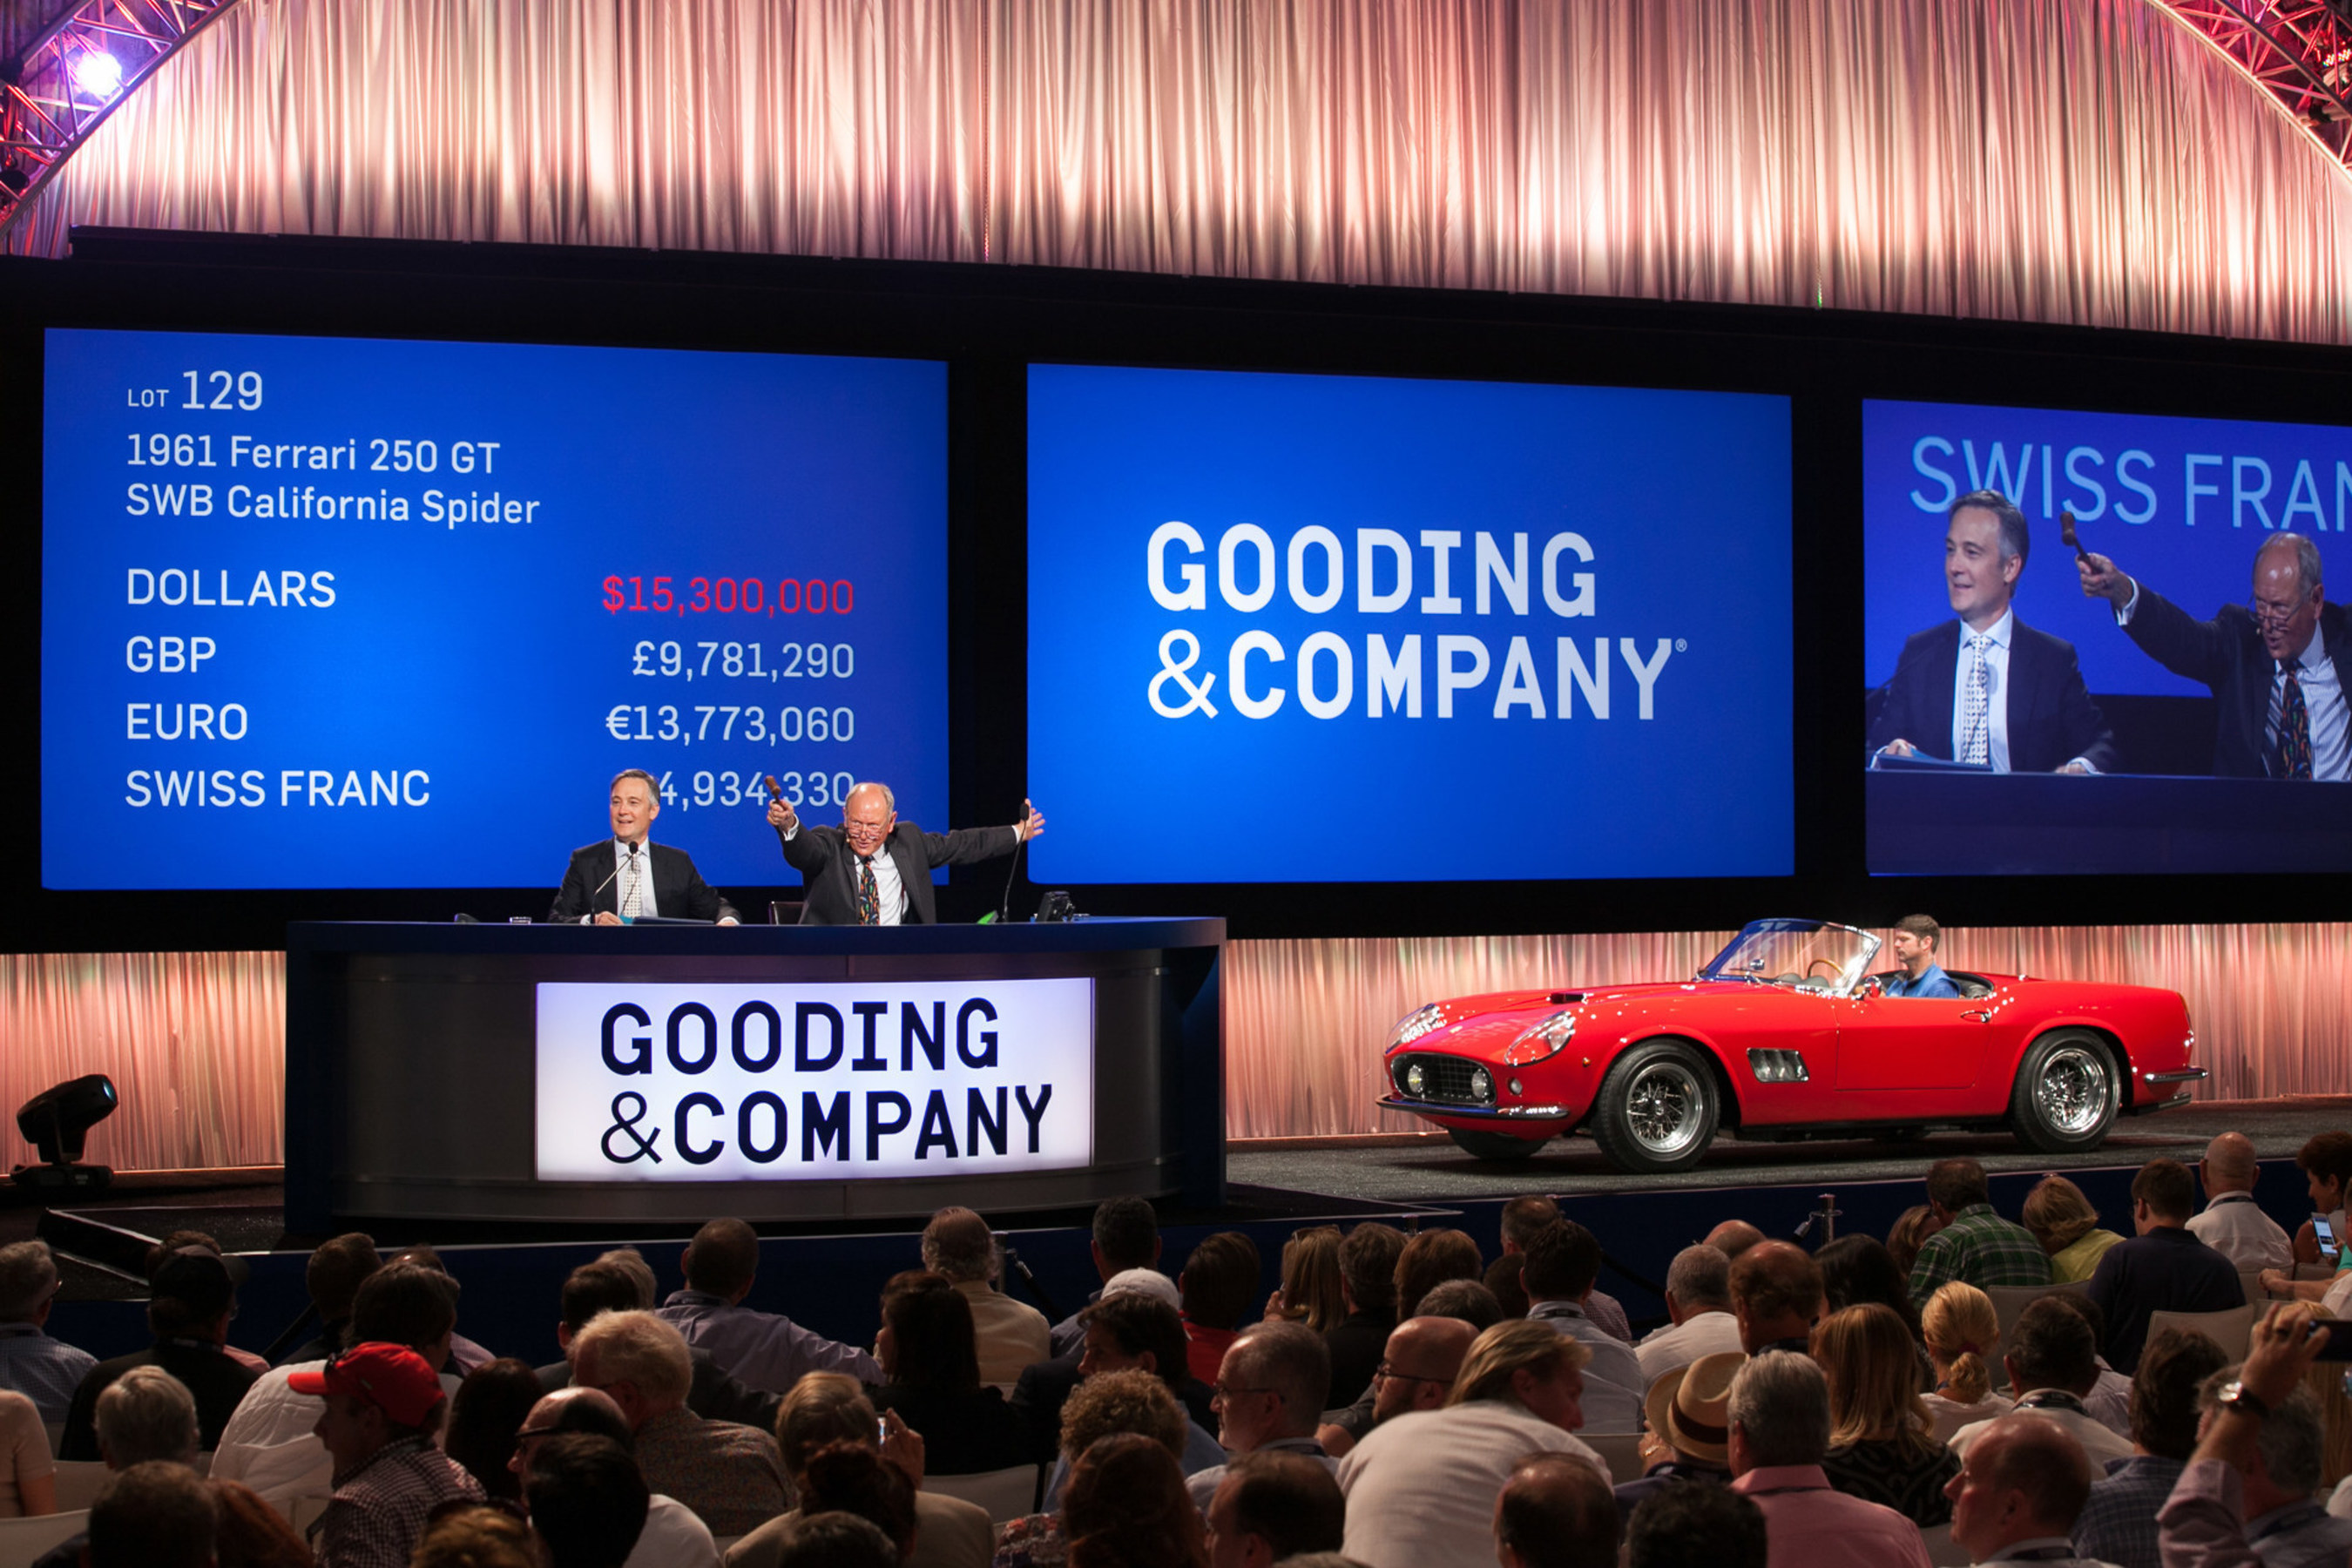 (From L-R) David Gooding and Charlie Ross with 1961 Ferrari 250 GT SWB California Spider (sold for $16,830,000).  All images copyright and courtesy of Gooding & Company. Photos by Jensen Sutta.